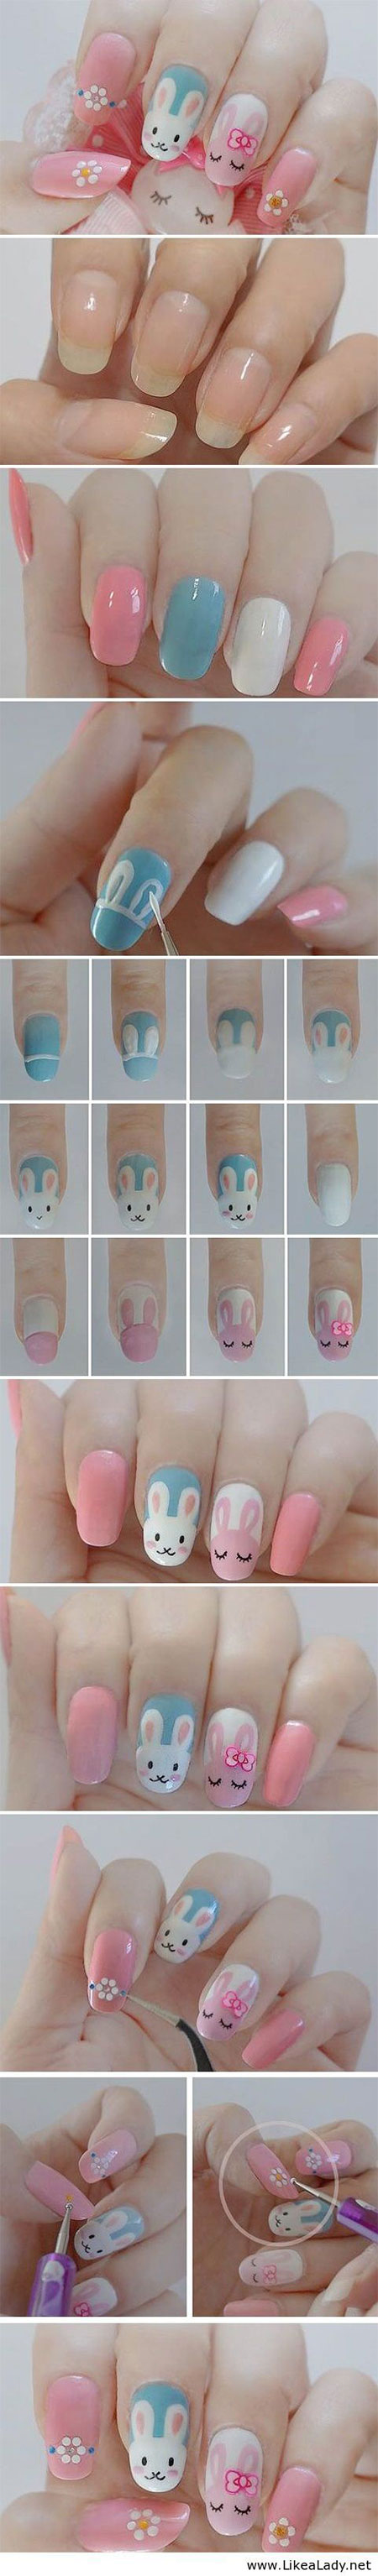 Elegant-Easter-Nail-Art-Tutorials-For-Beginners-Learners-2014-10